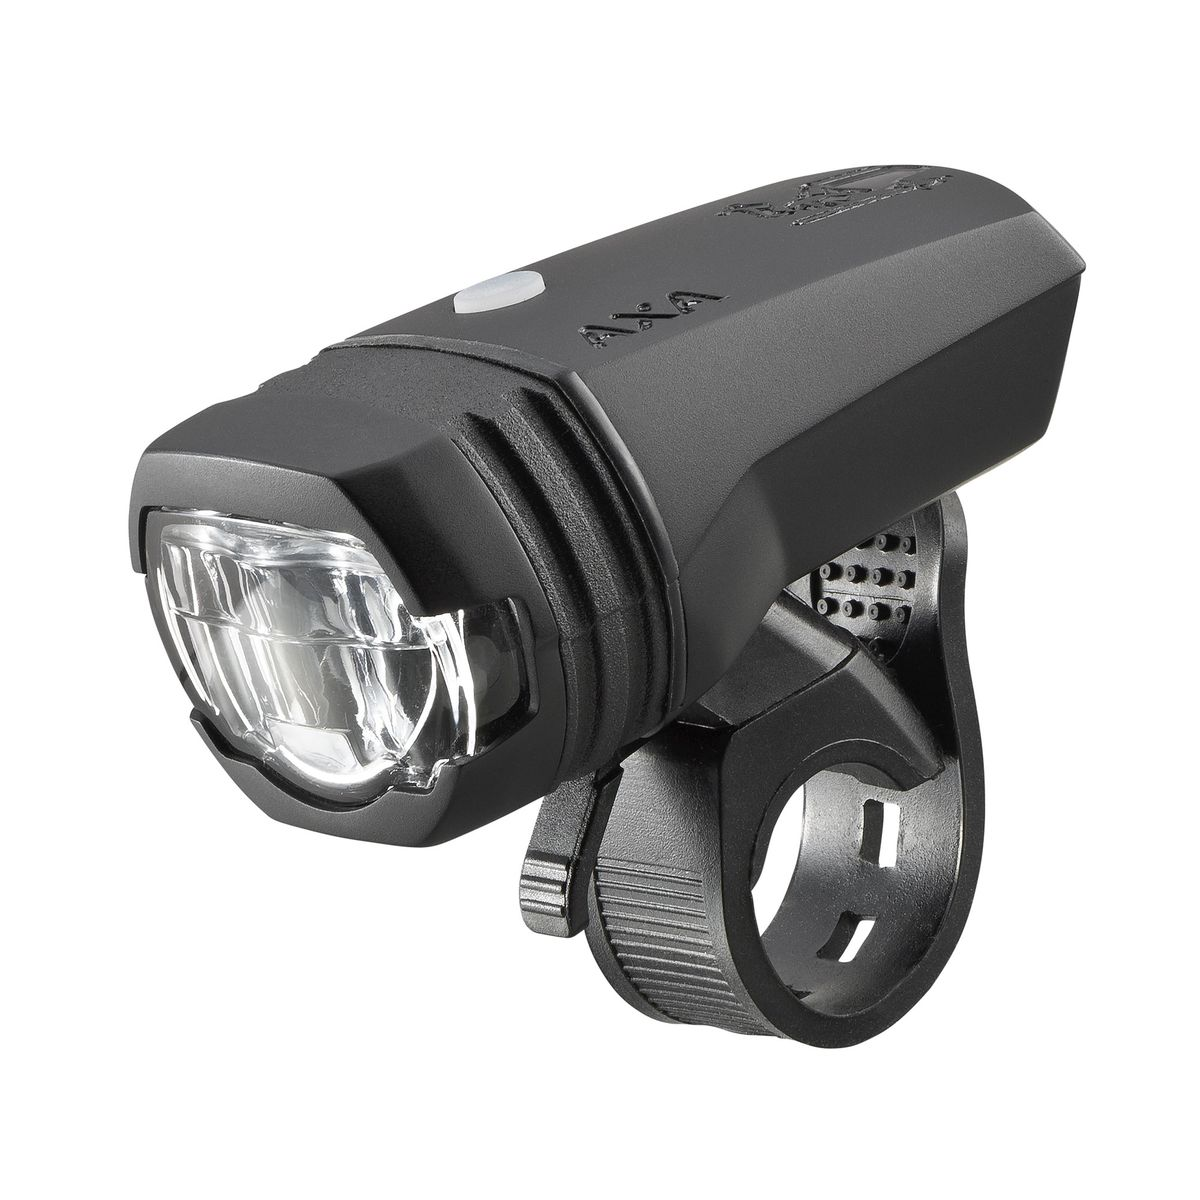 Greenline 50 Lux USB front light